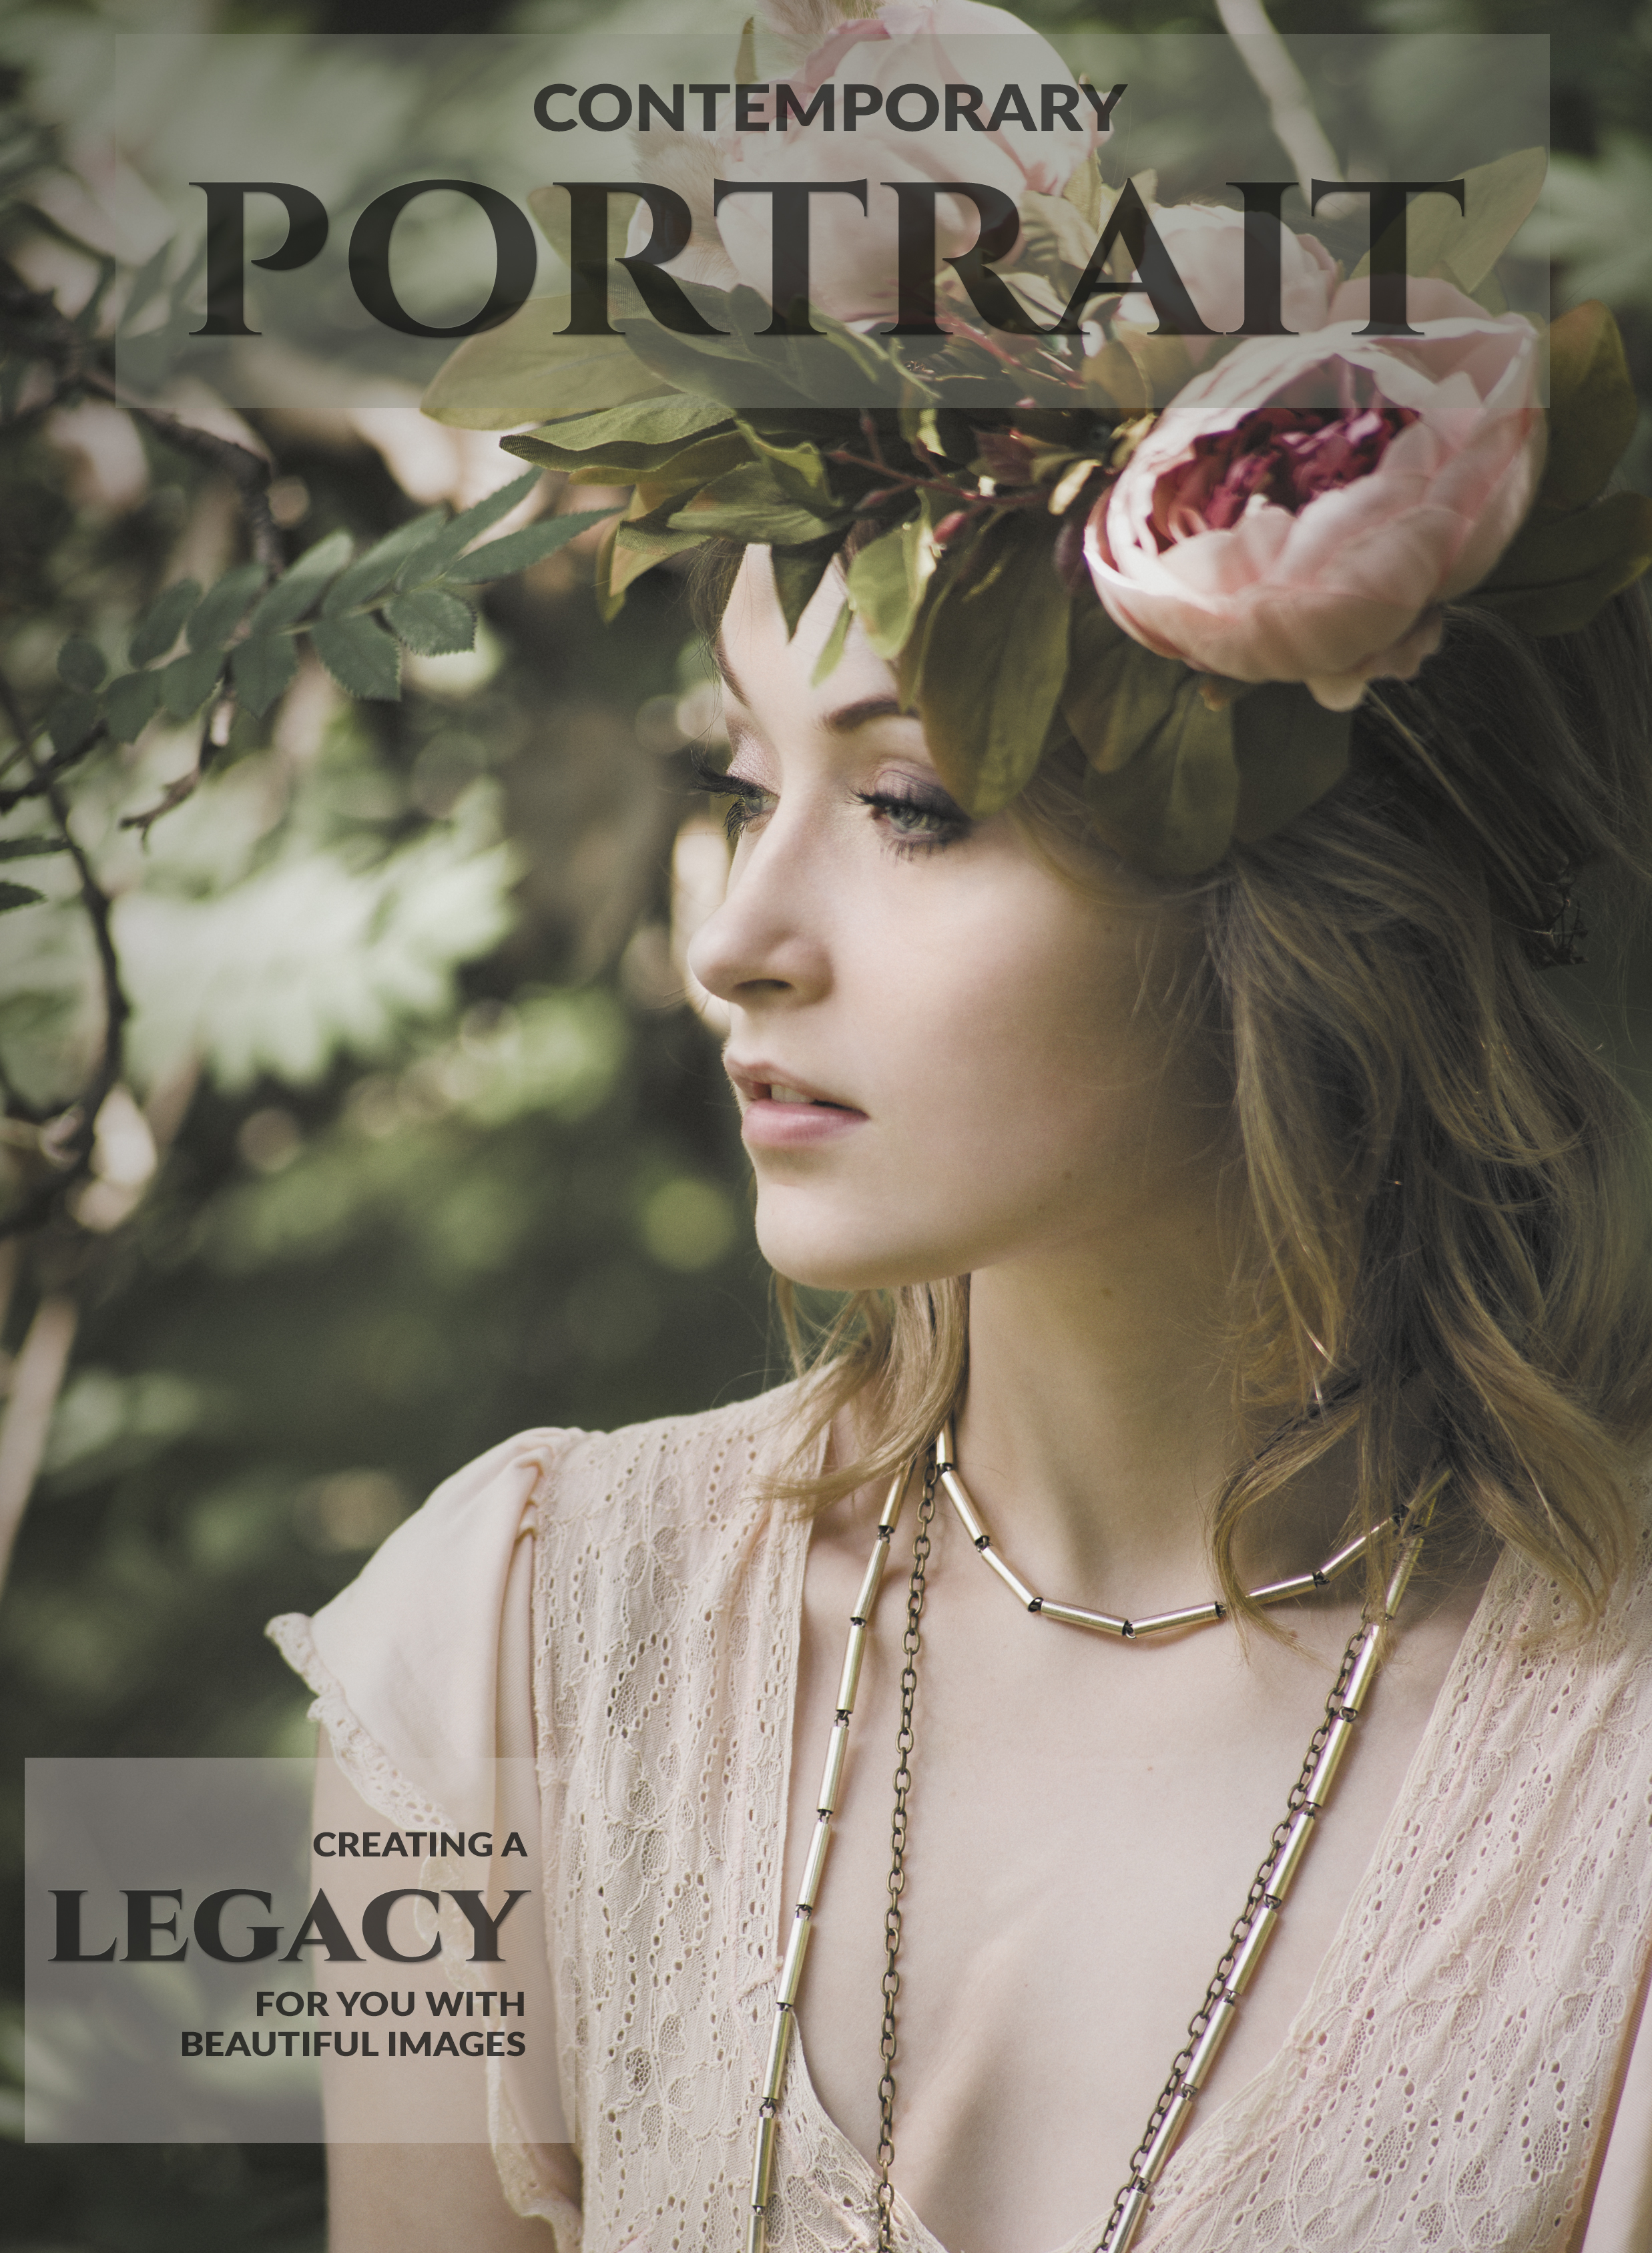 Magazine cover of a young woman in the forest in a lace peach dress wearing a flower crown